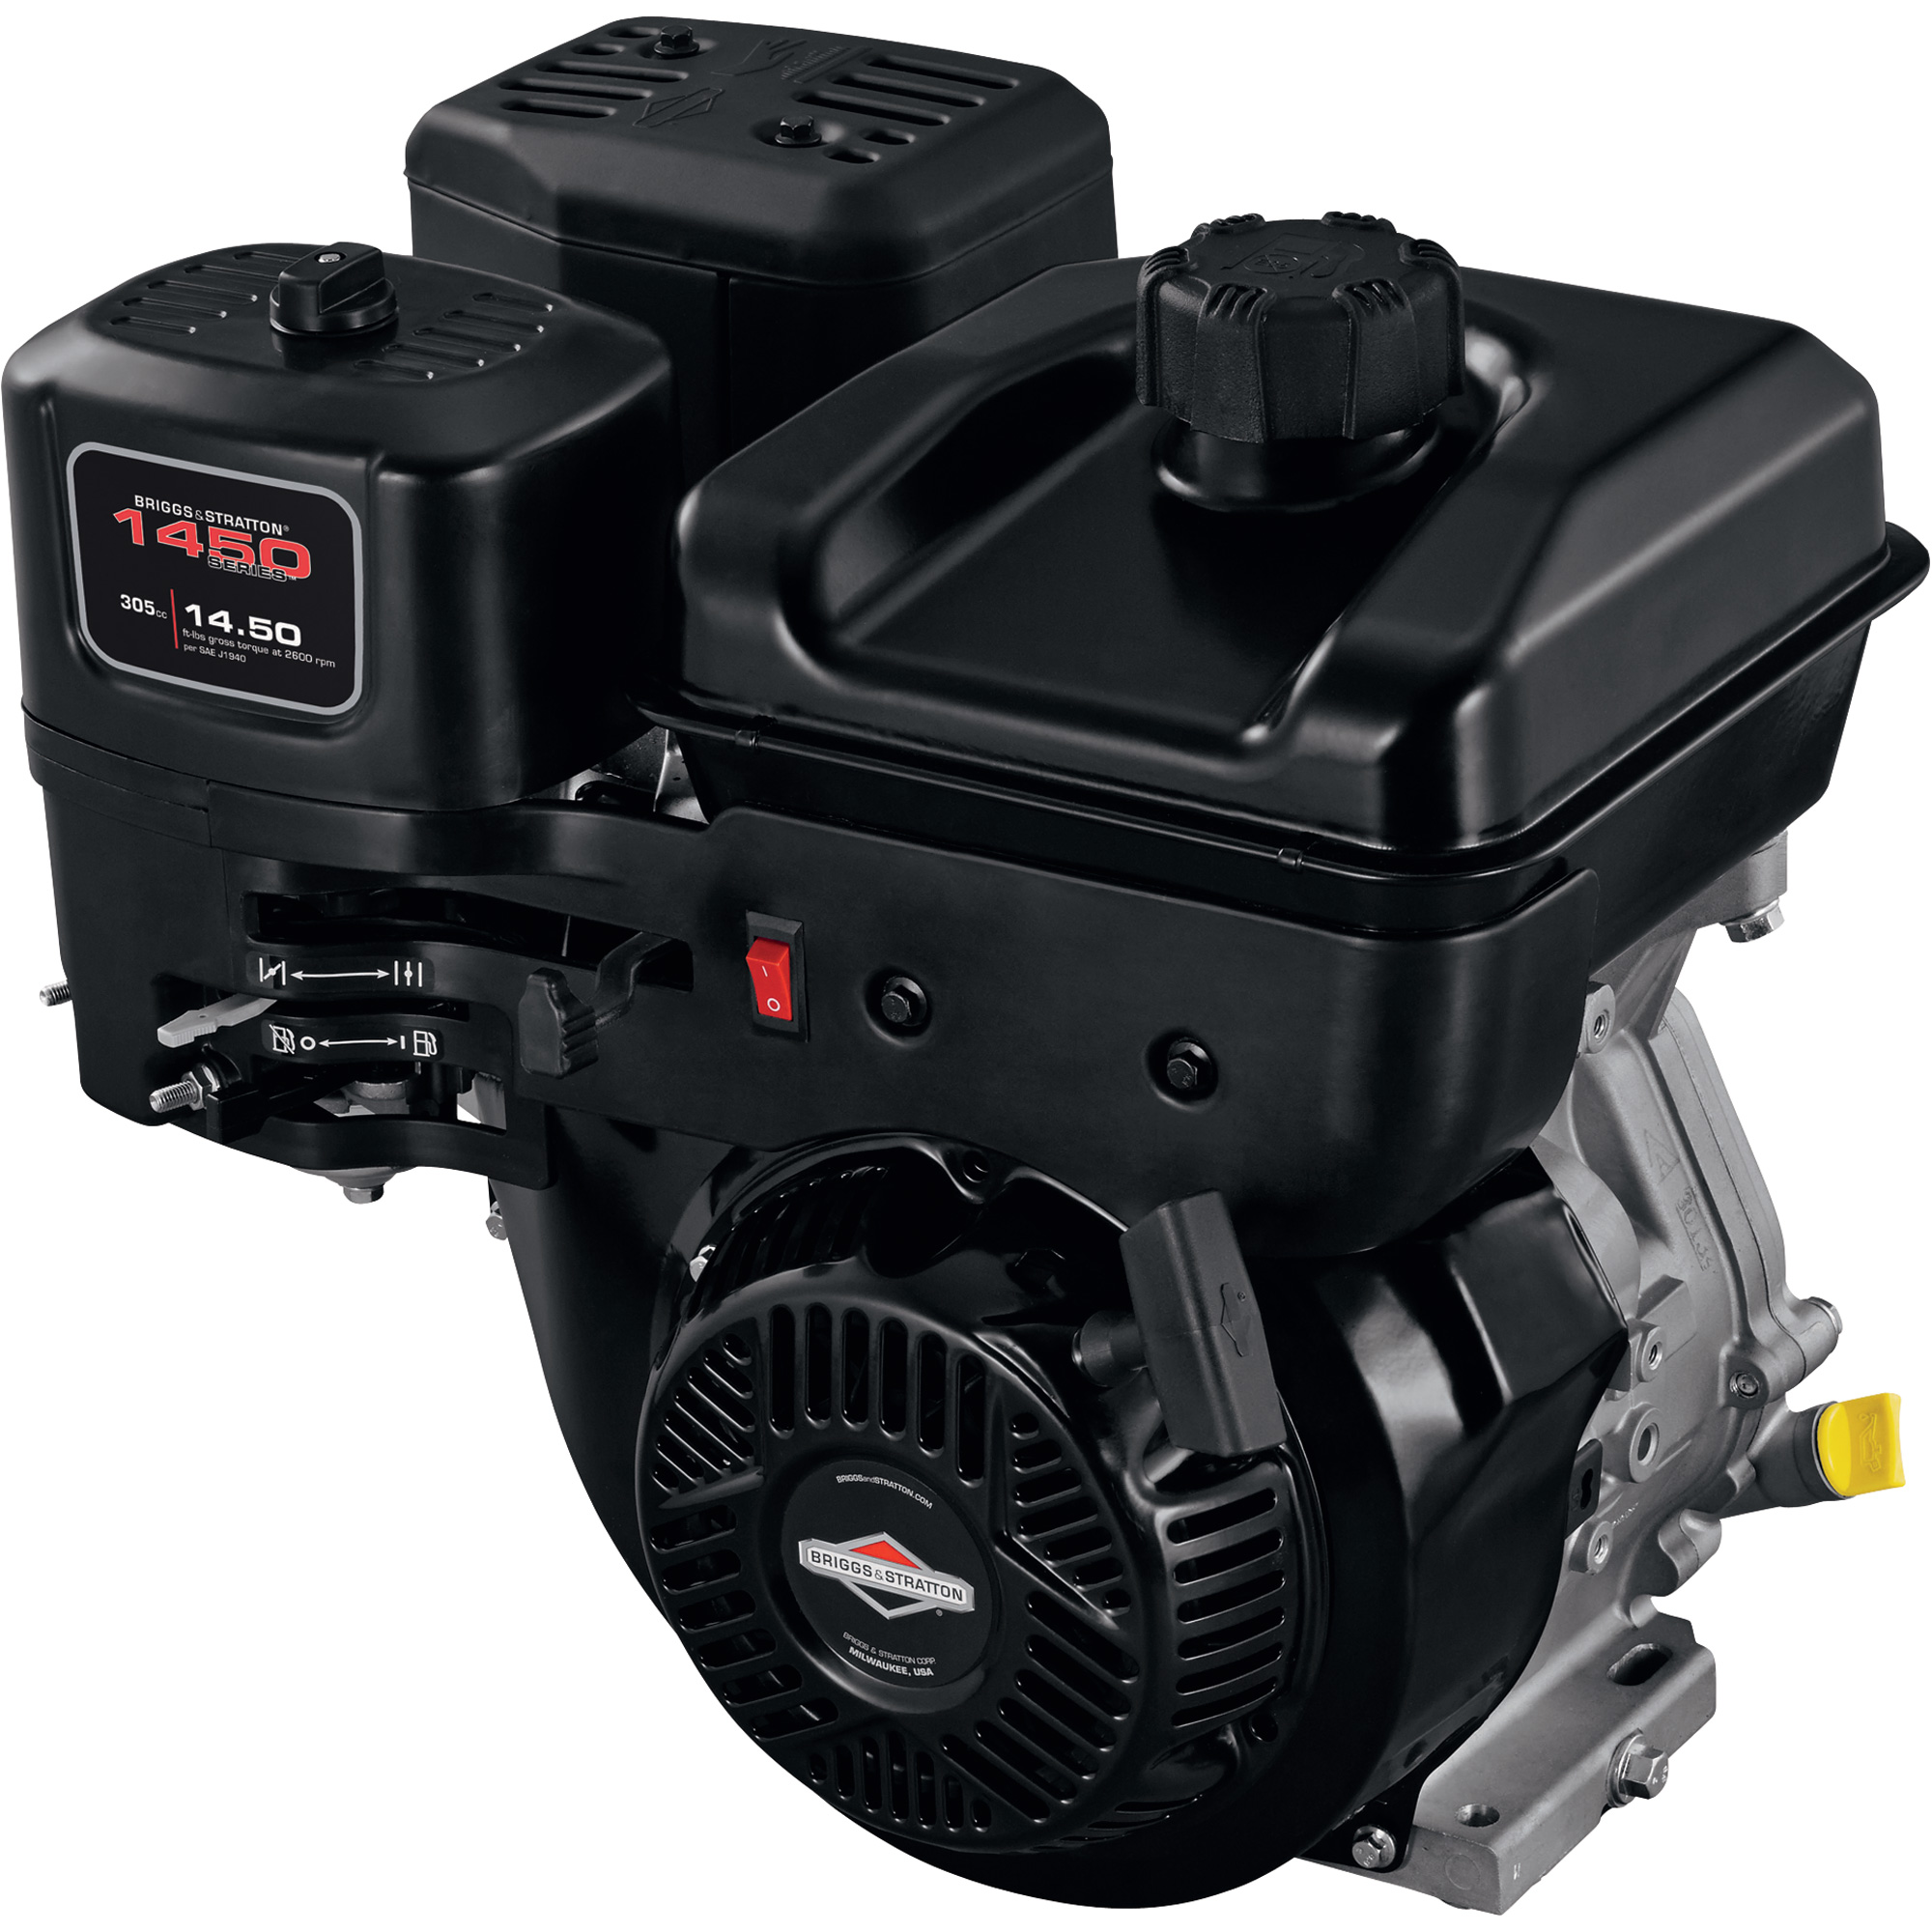 briggs stratton 1450 series horizontal ohv engine. Black Bedroom Furniture Sets. Home Design Ideas